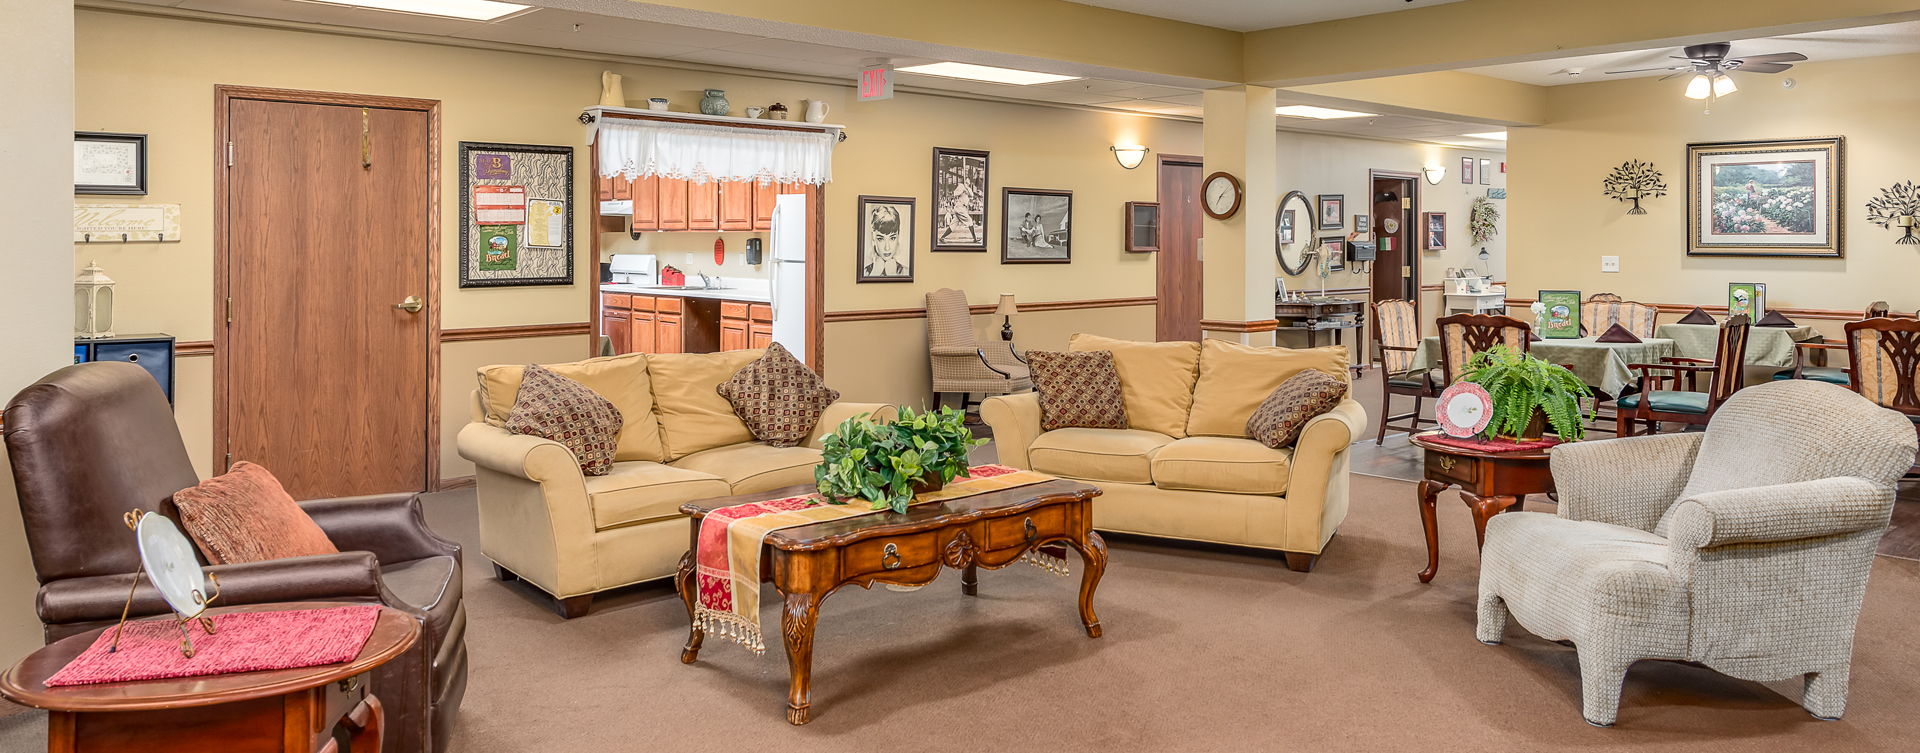 Residents can enjoy furniture covered in cozy fabrics in the Mary B's living room at Bickford of Midland